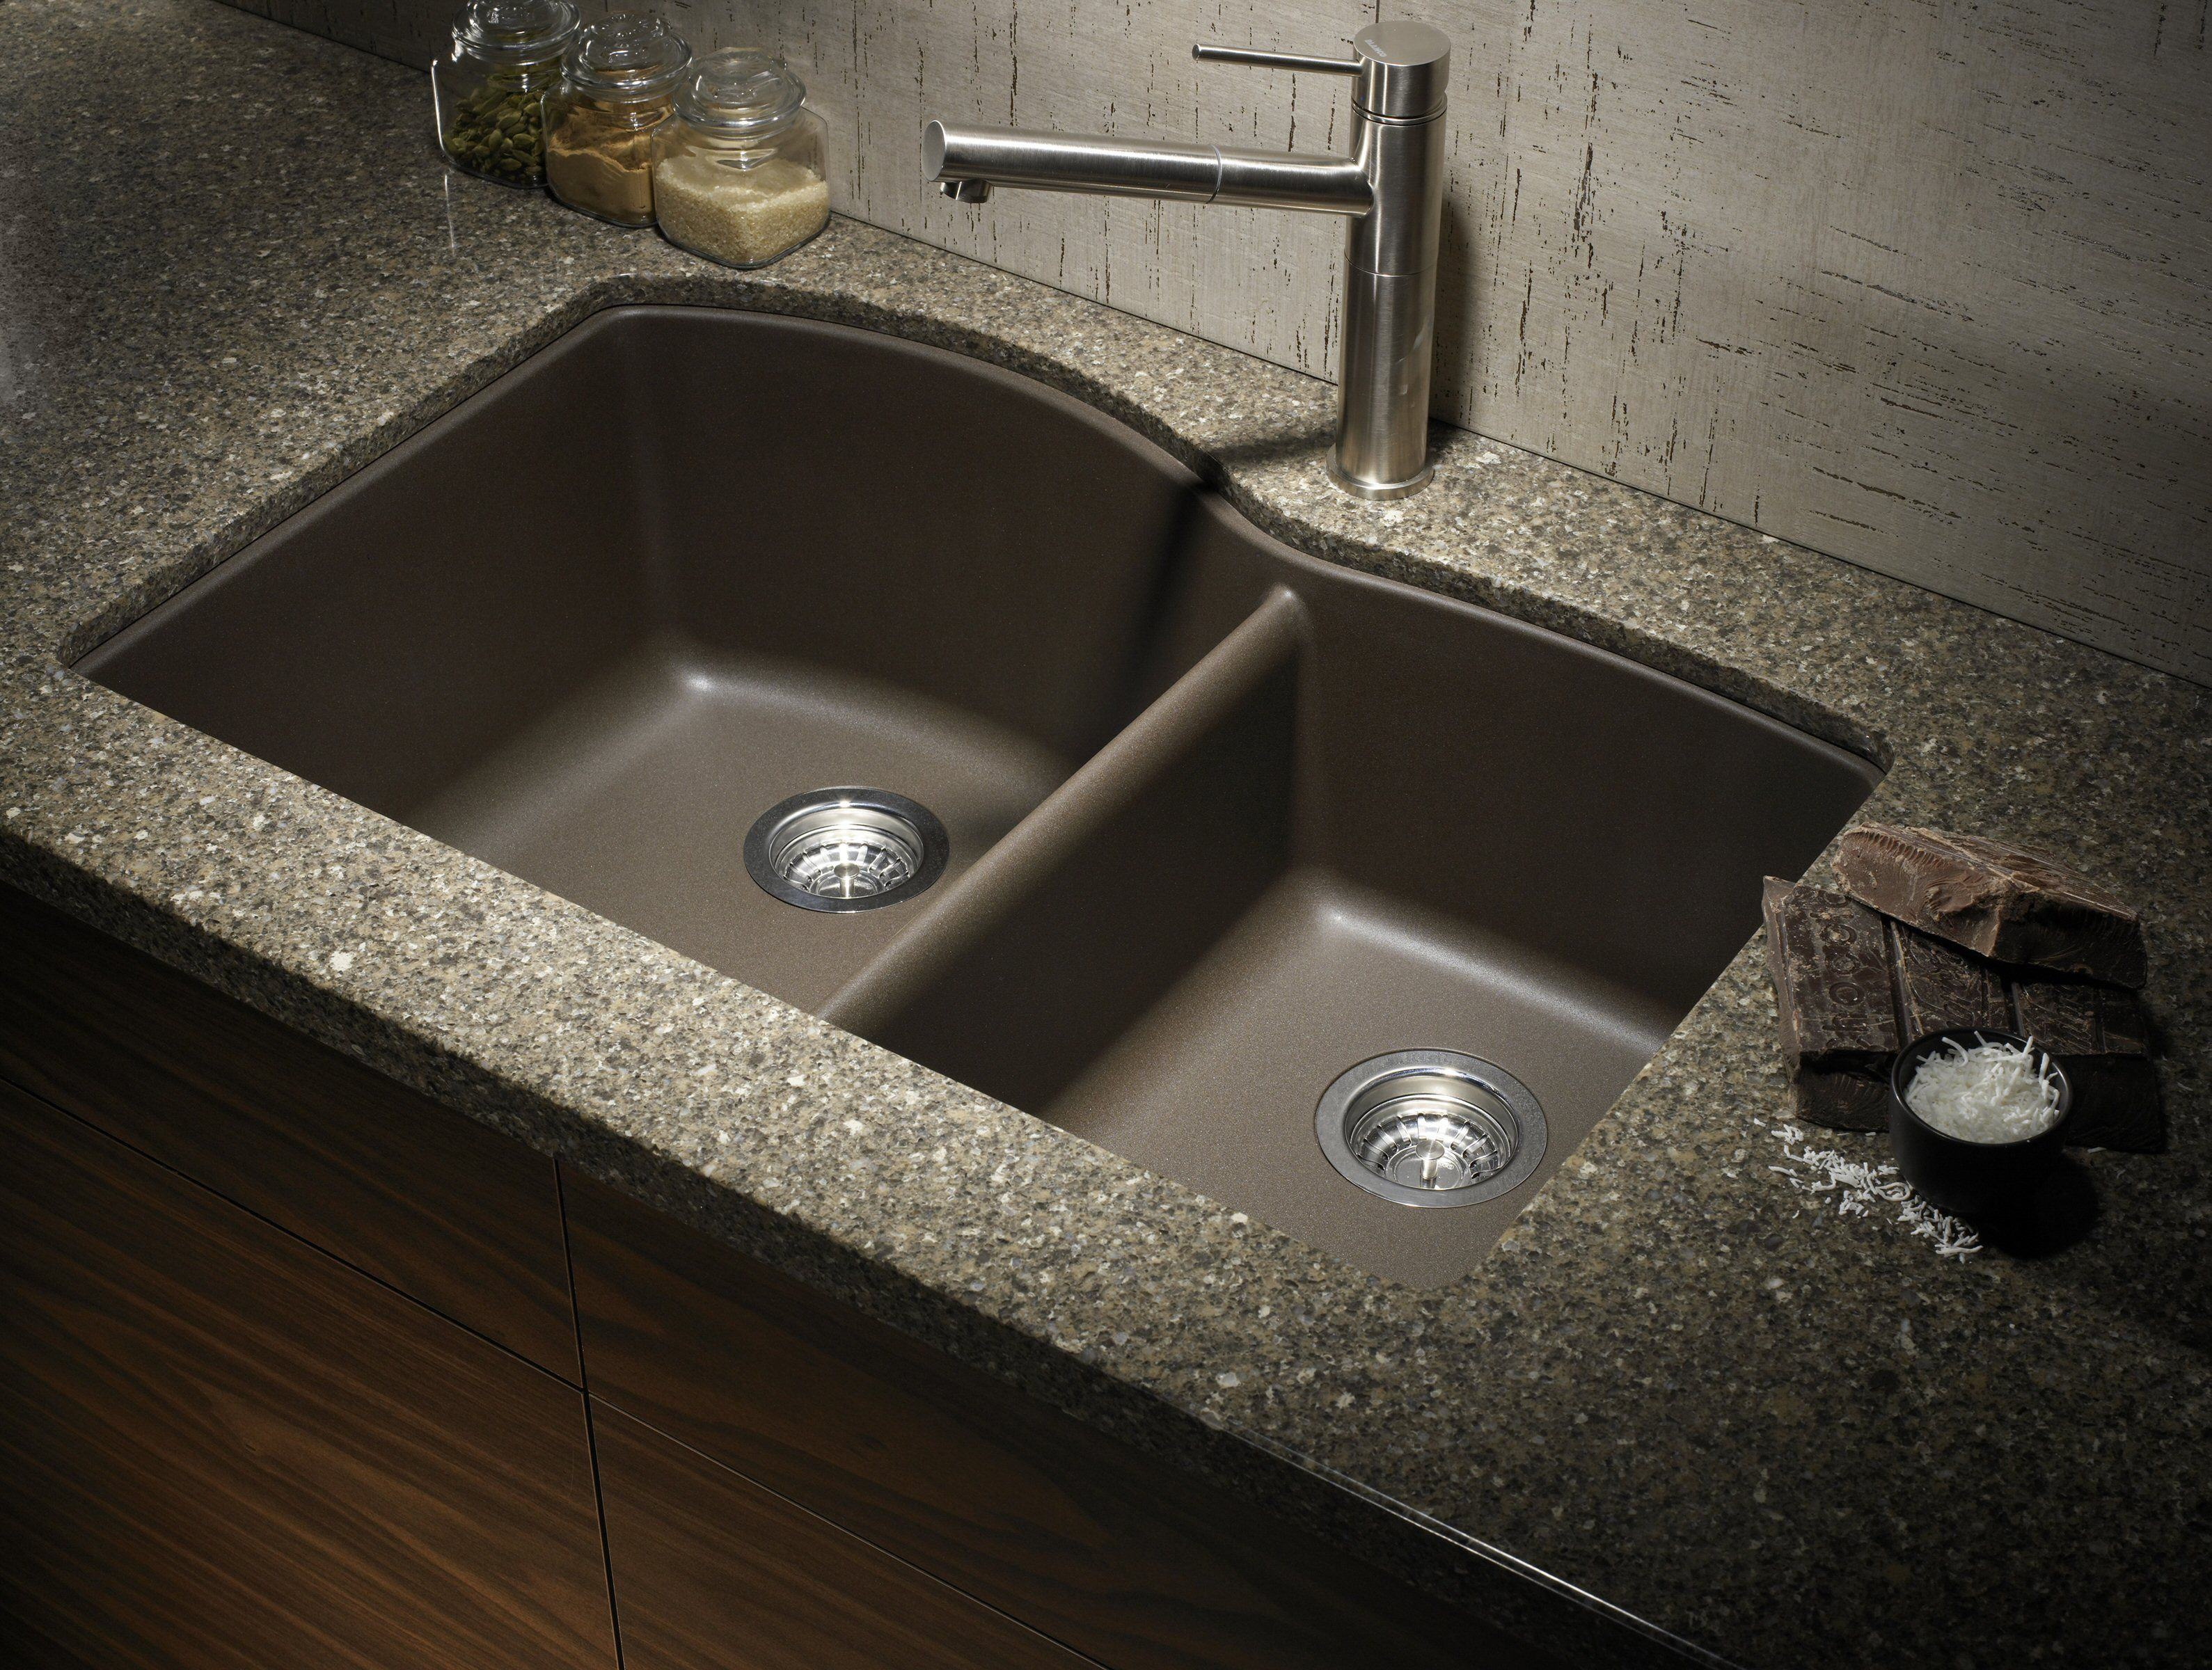 granite sinks granite kitchen sinks Ants or other bugs around kitchen sink bathroom Put mixture of dish soap and